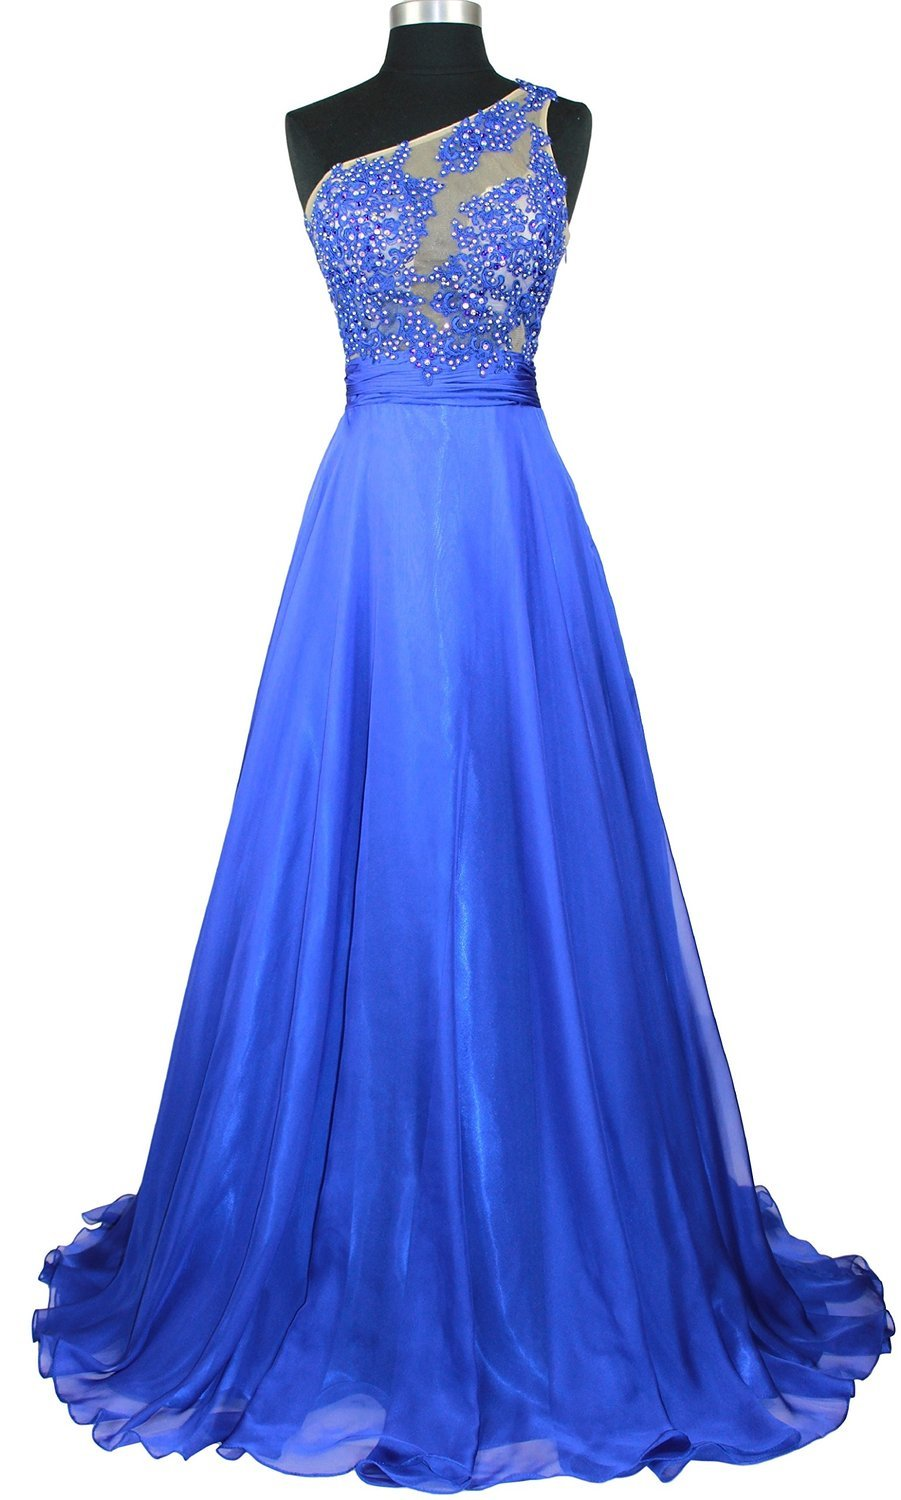 Ovitina Long Fitted One Shoulder Beaded Lace Sheer Top Pageant Formal Prom Dress Royal Blue us16